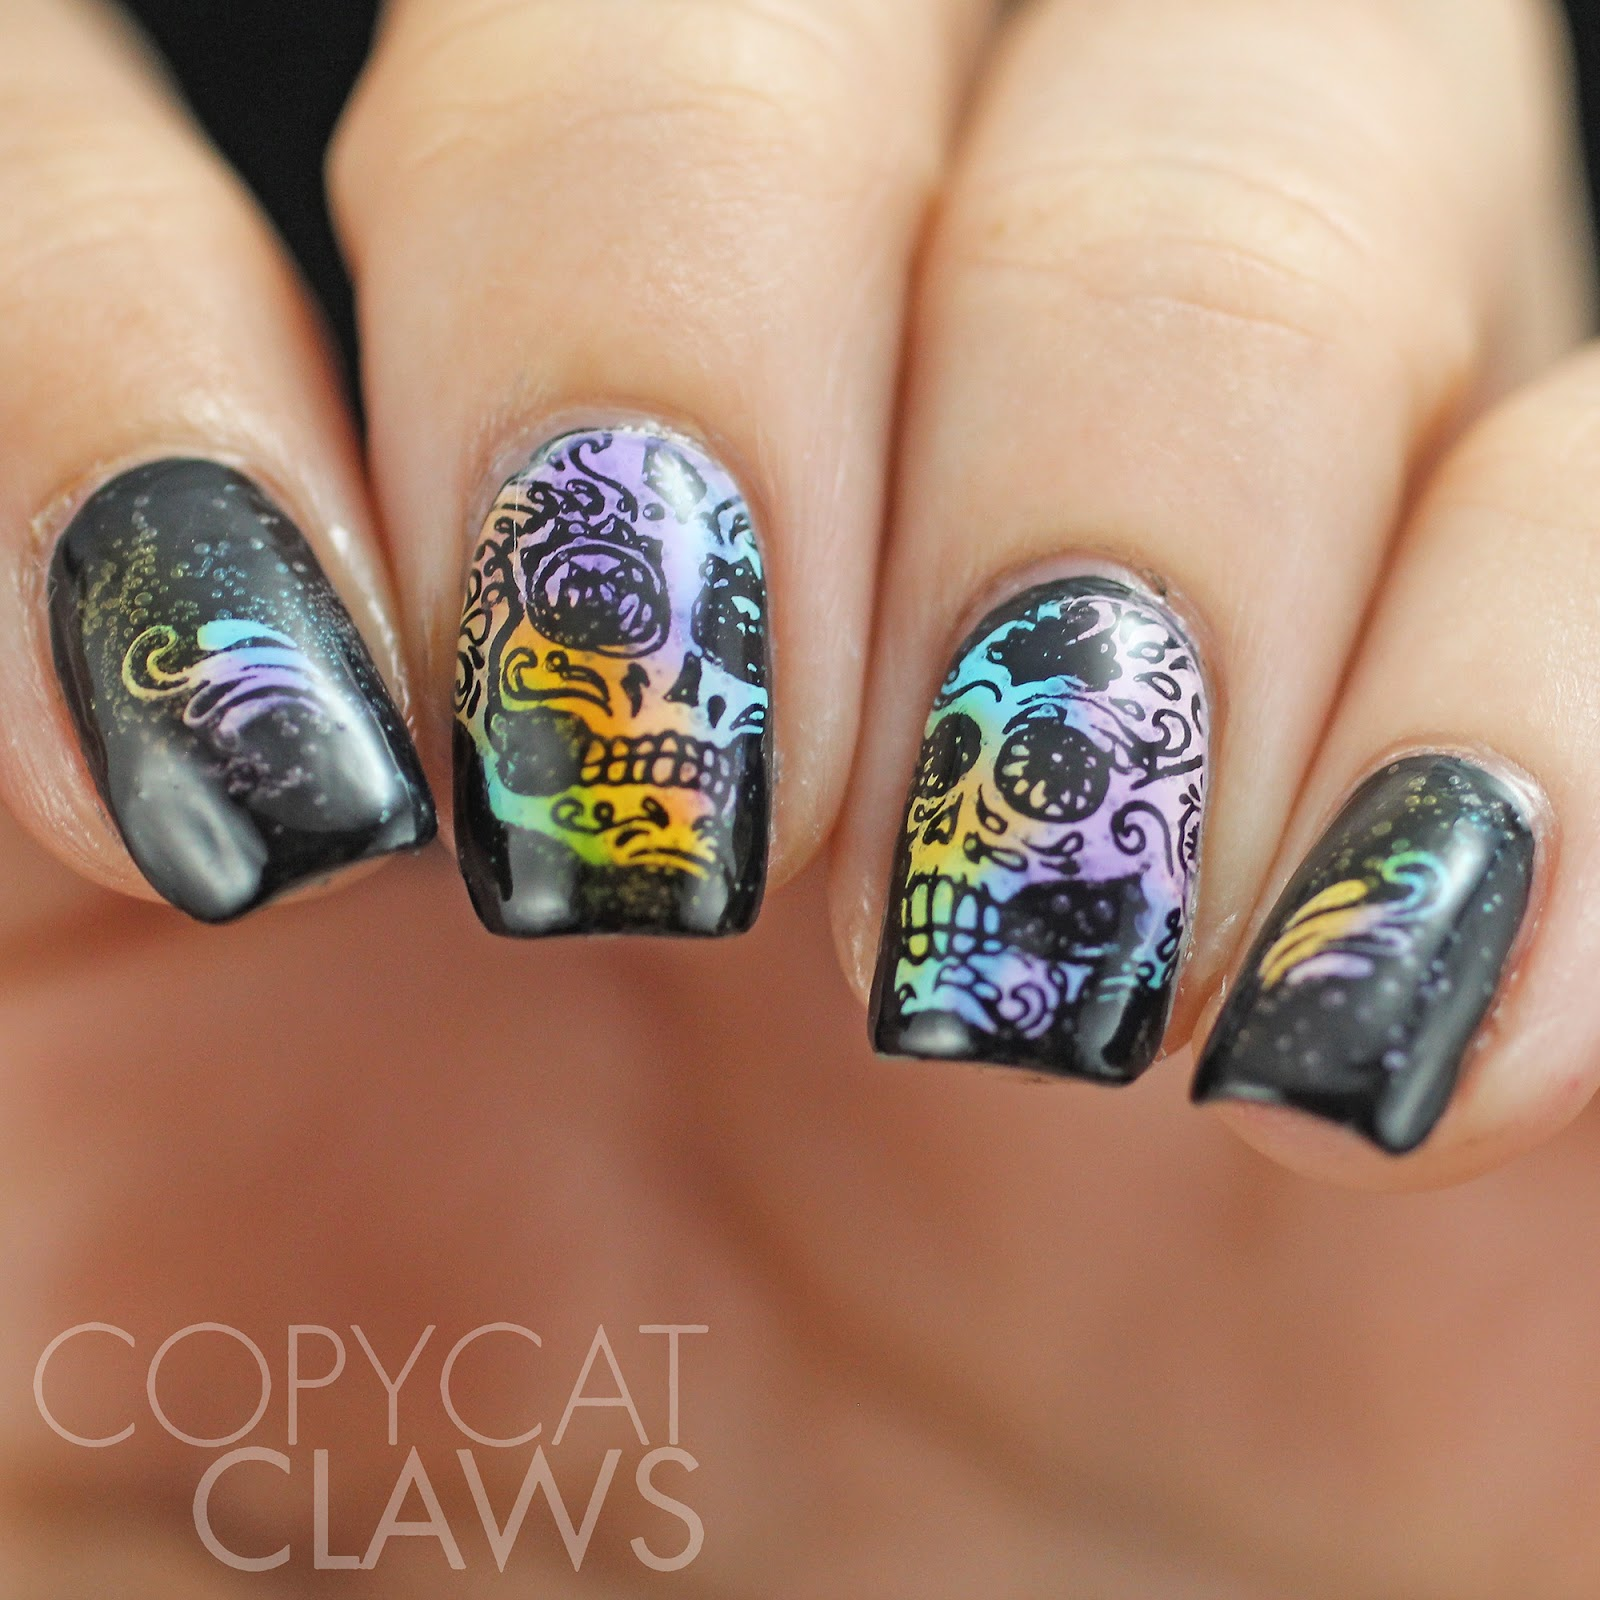 Copycat claws uberchic beauty sugar skulls 01 stamping plate review below is a scan of the sugar skulls plate that i received this plate has the regular uberchic beauty dimensions of 95 x 145 cm but it differs from the prinsesfo Image collections